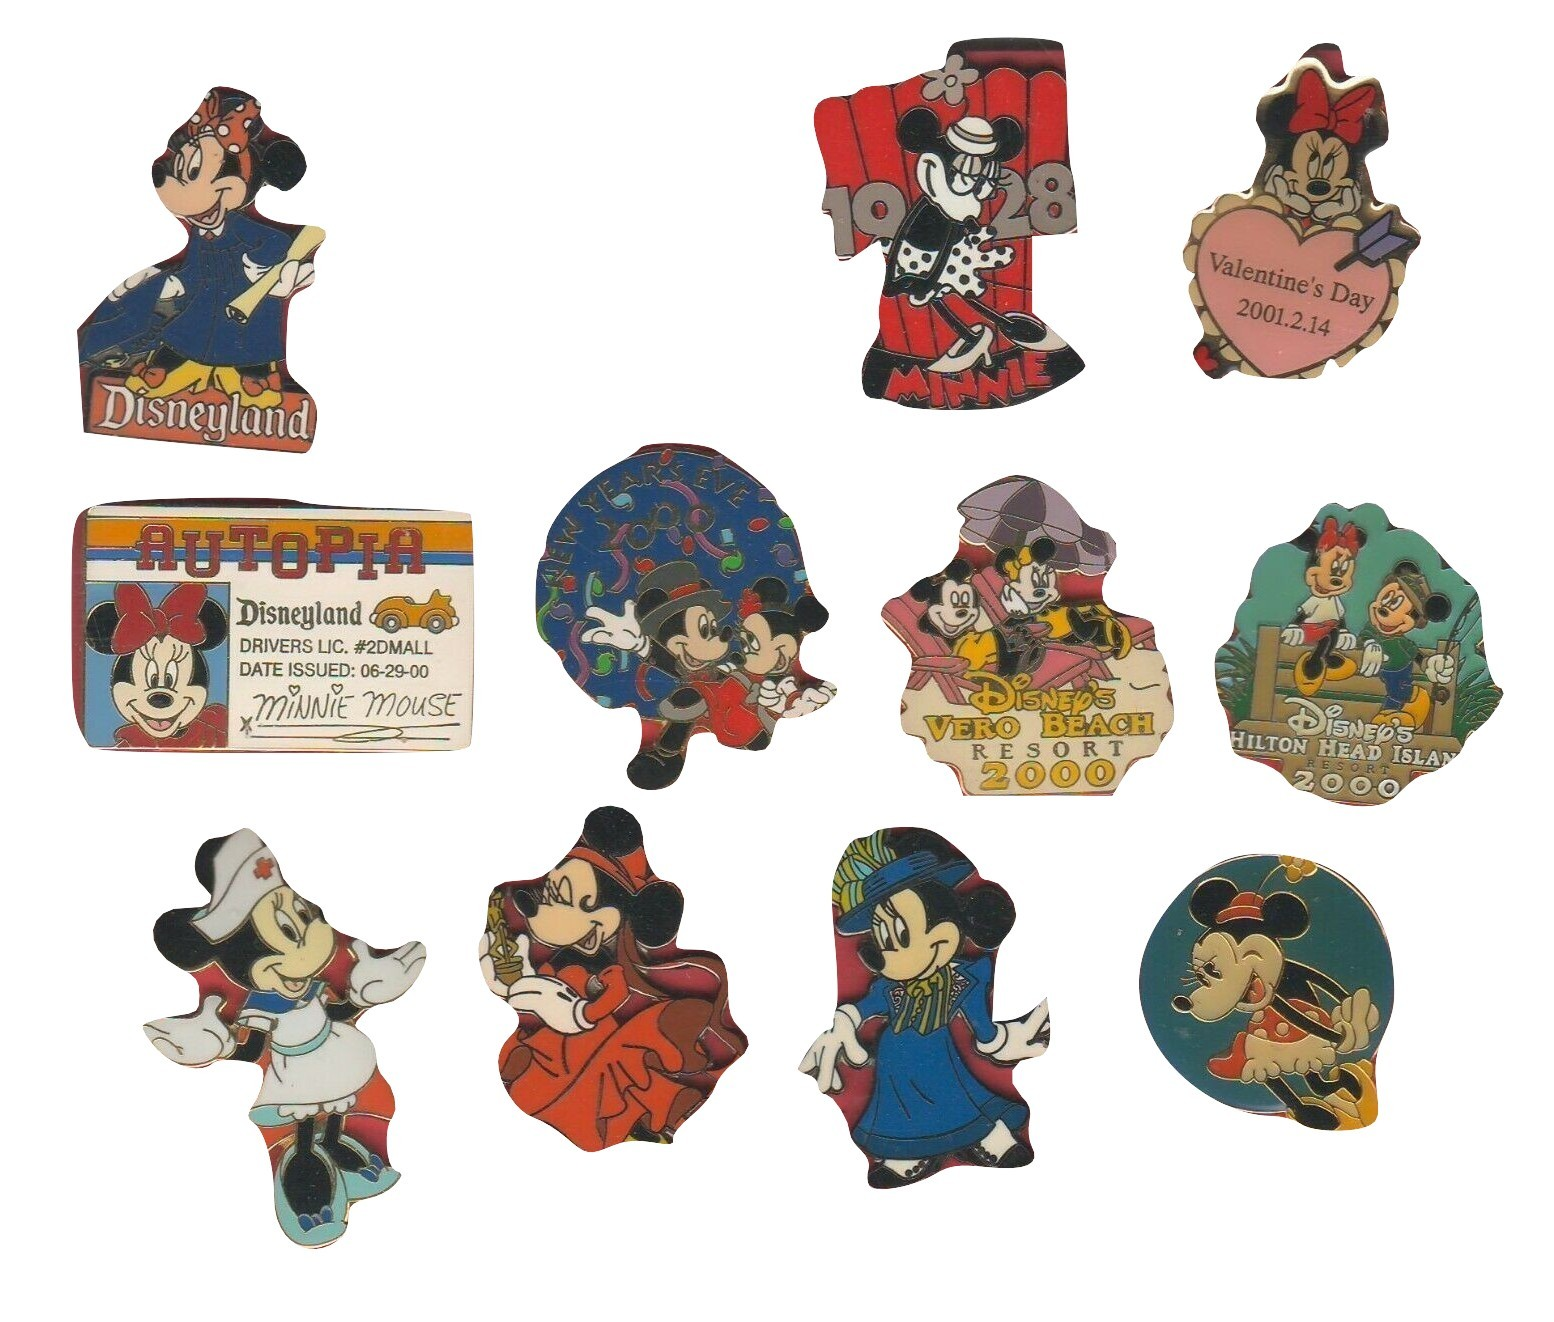 Disney Minnie Mouse All pins are Authentic Disney pins full body and more